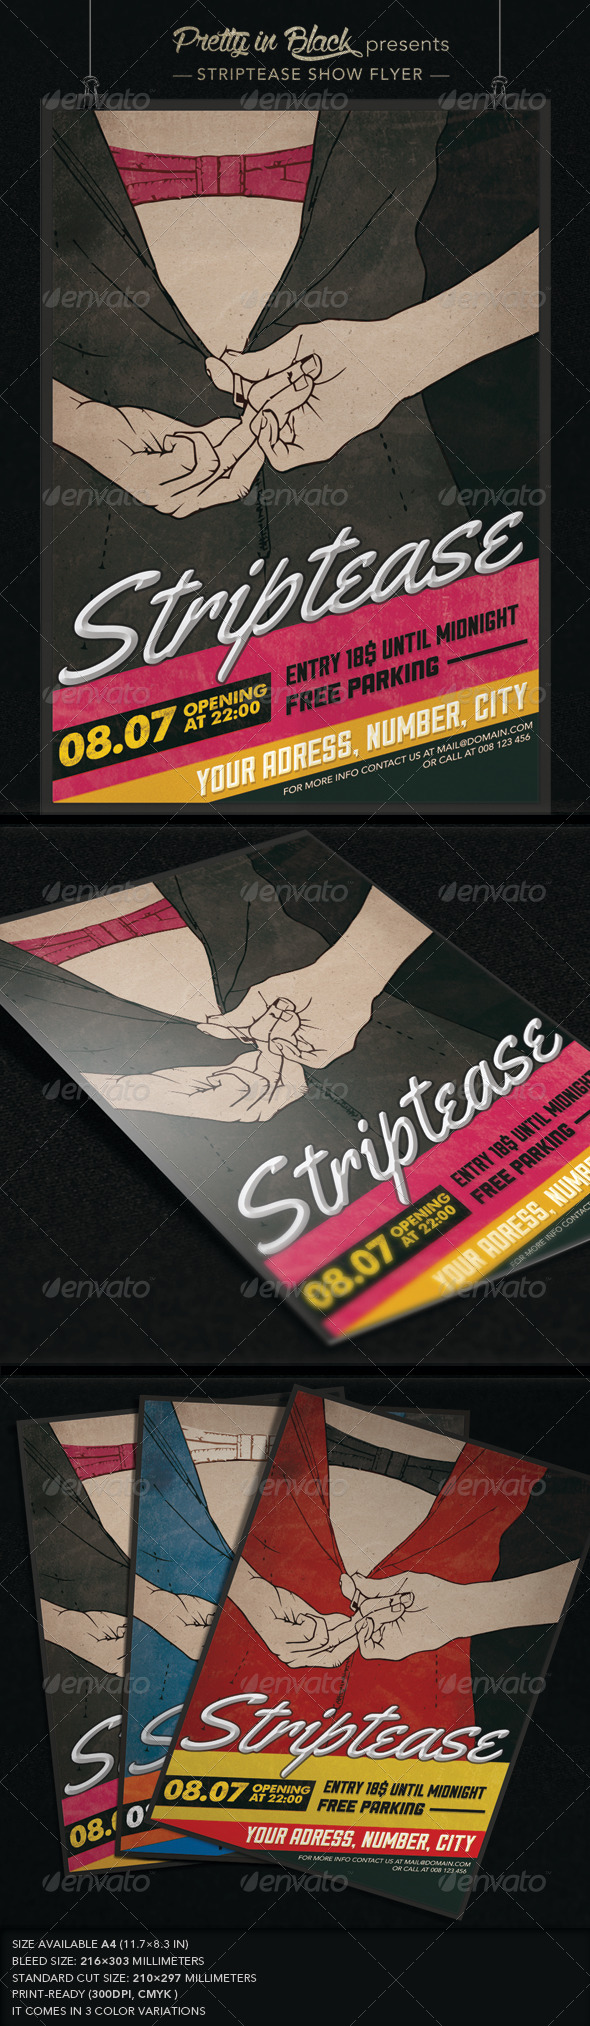 GraphicRiver Striptease Show Flyer 7341969